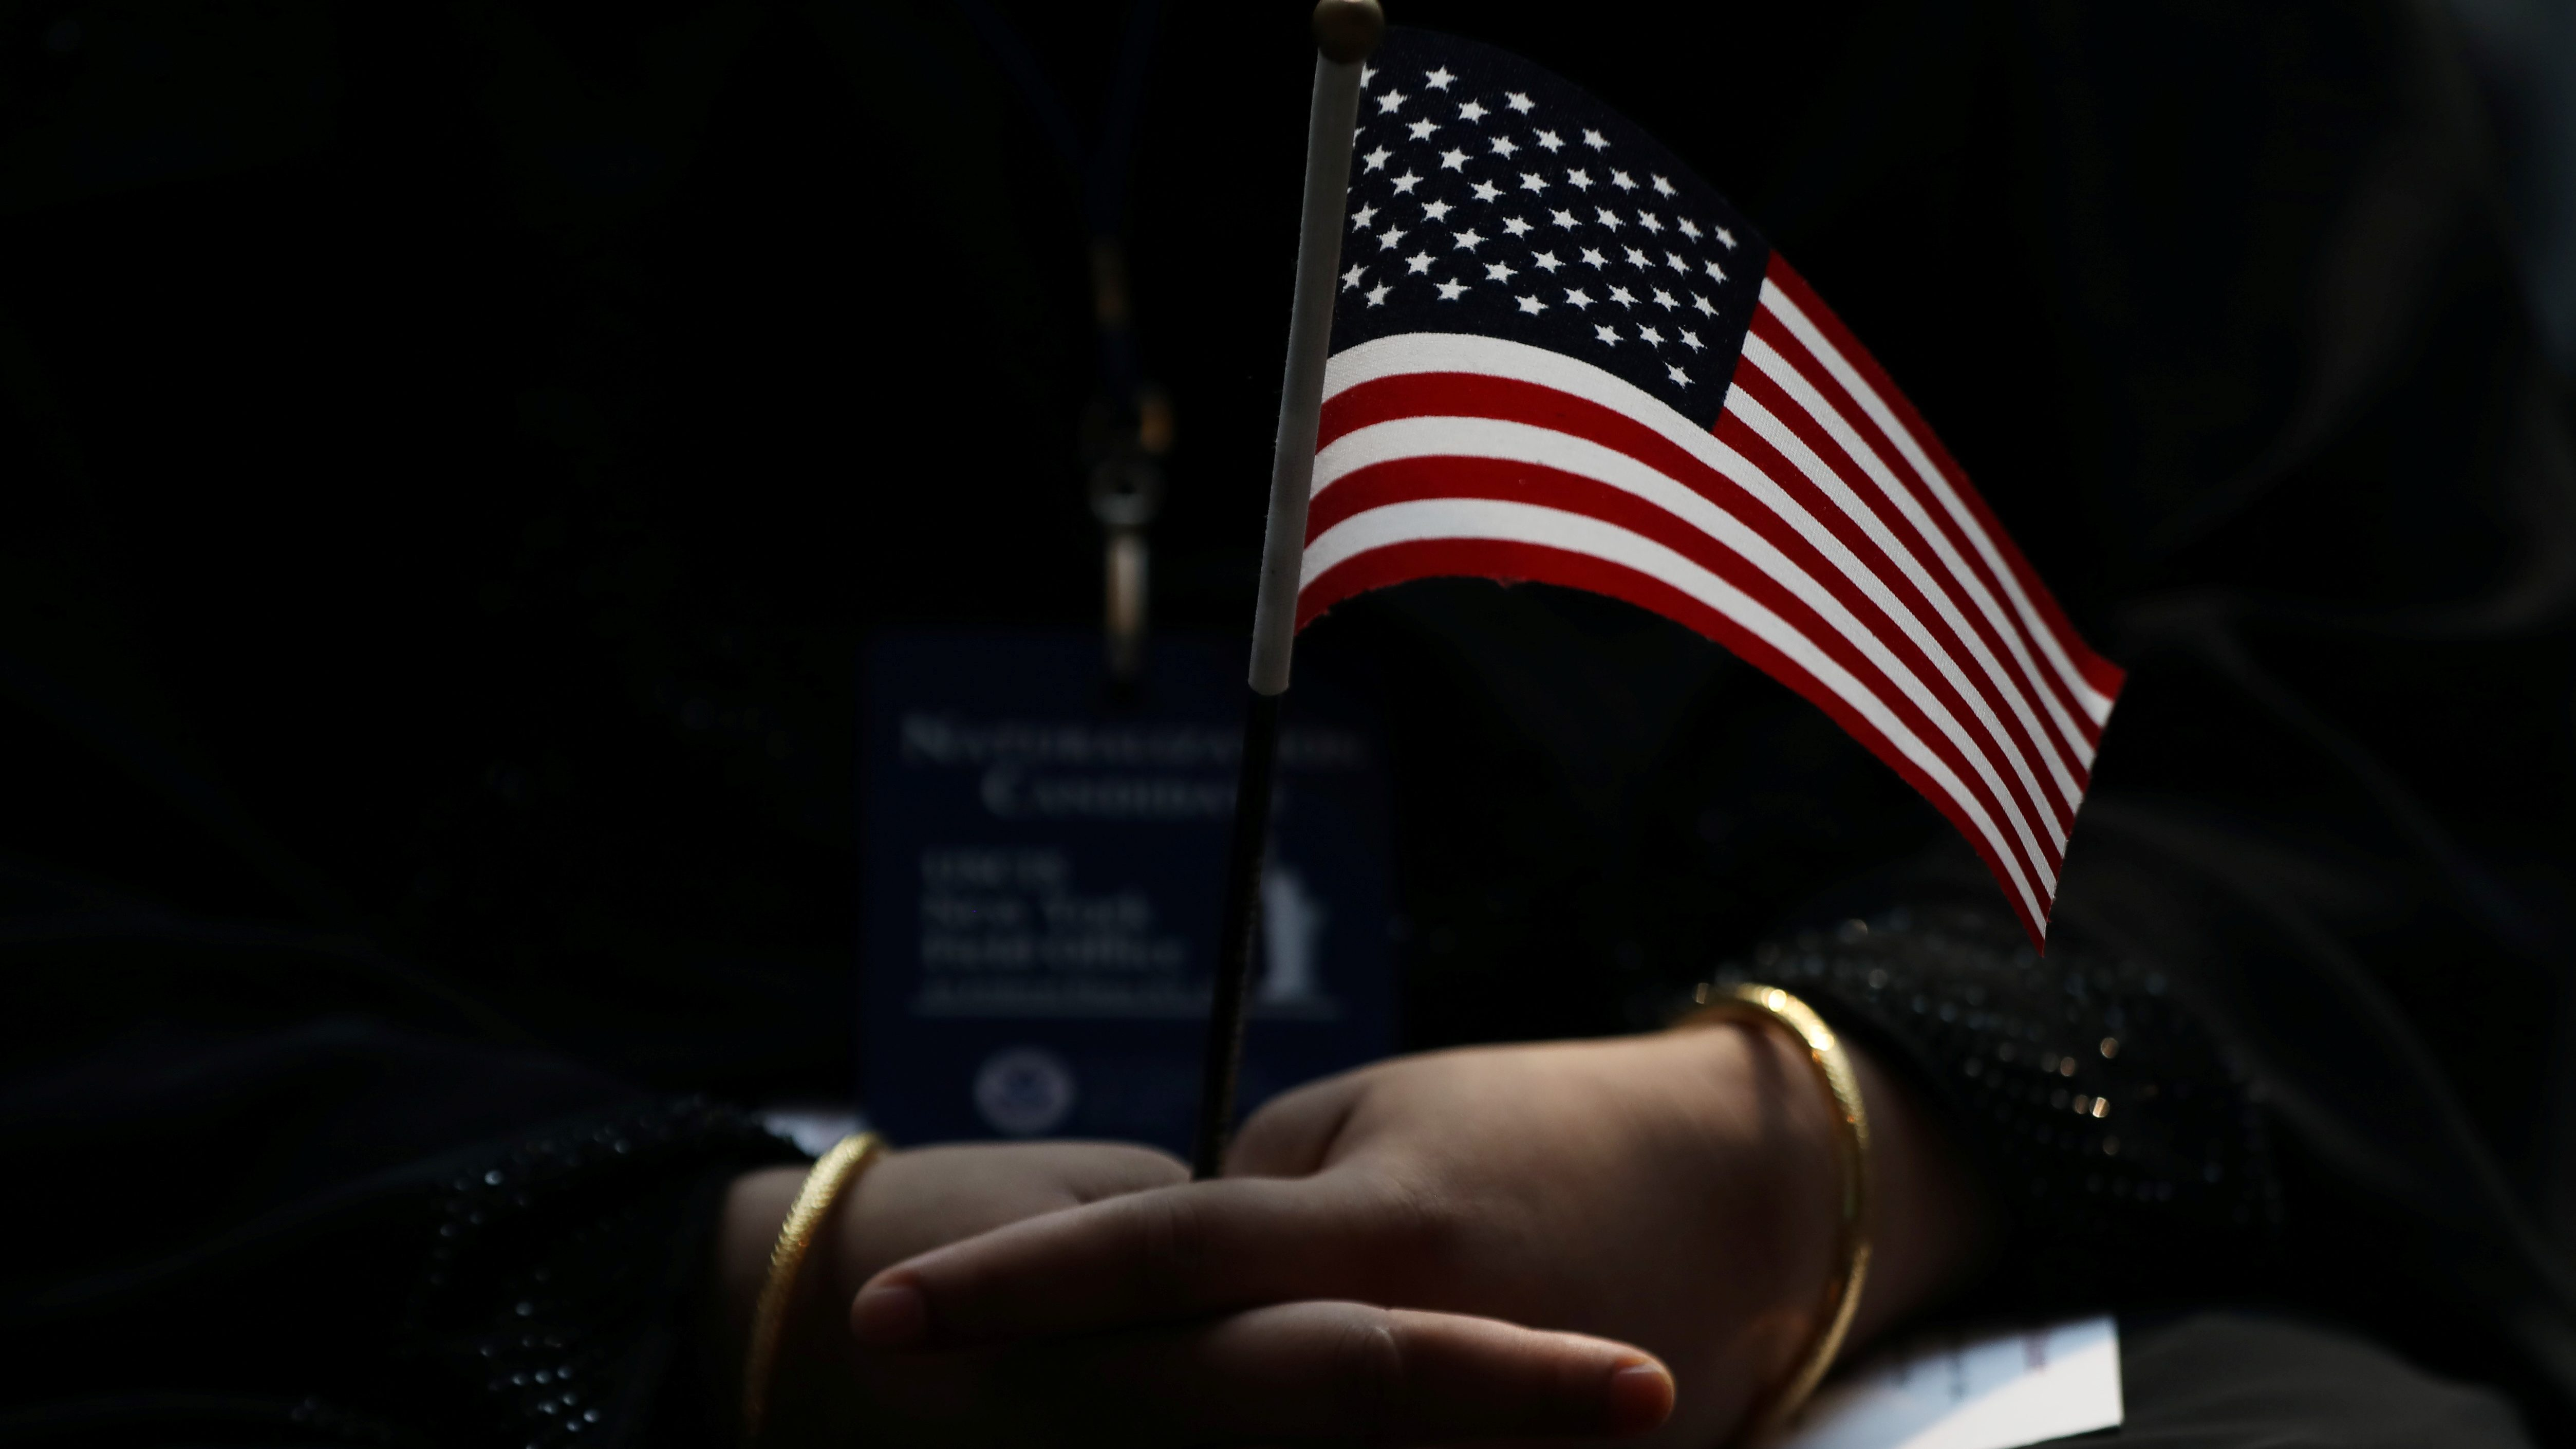 An immigrant woman holds a U.S. flag during a U.S. Citizenship and Immigration Services Naturalization ceremony in the New York Public Library in New York